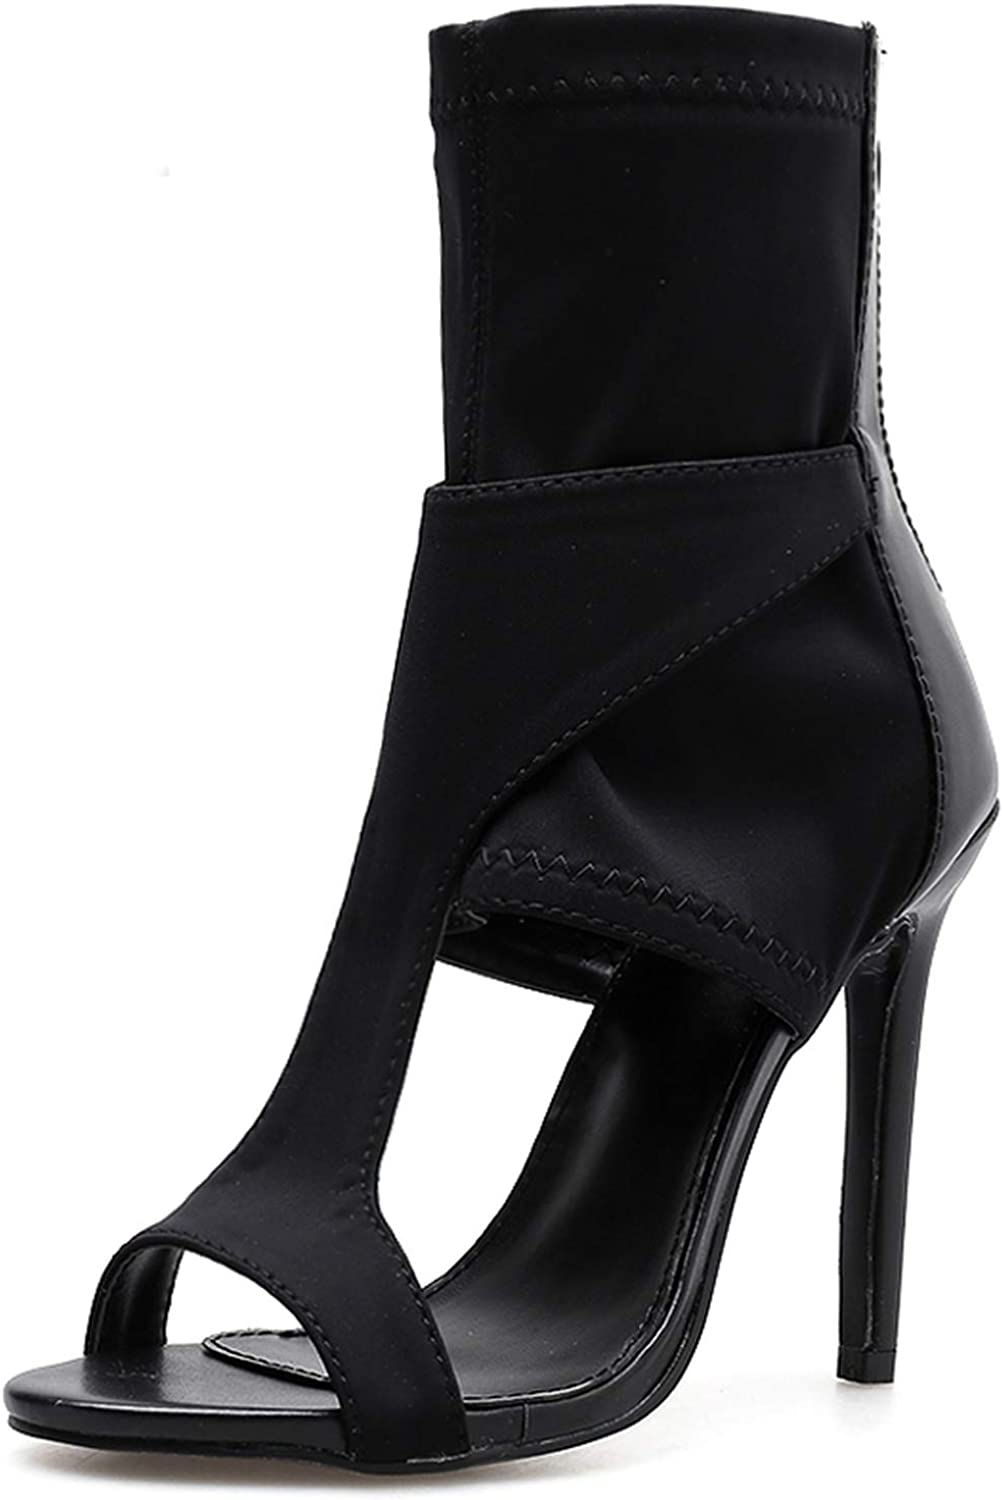 Woman shoes Stretch Fabric High-heelsedl Sandals Boots Thin Heels Open Toe Pumps,Black,4